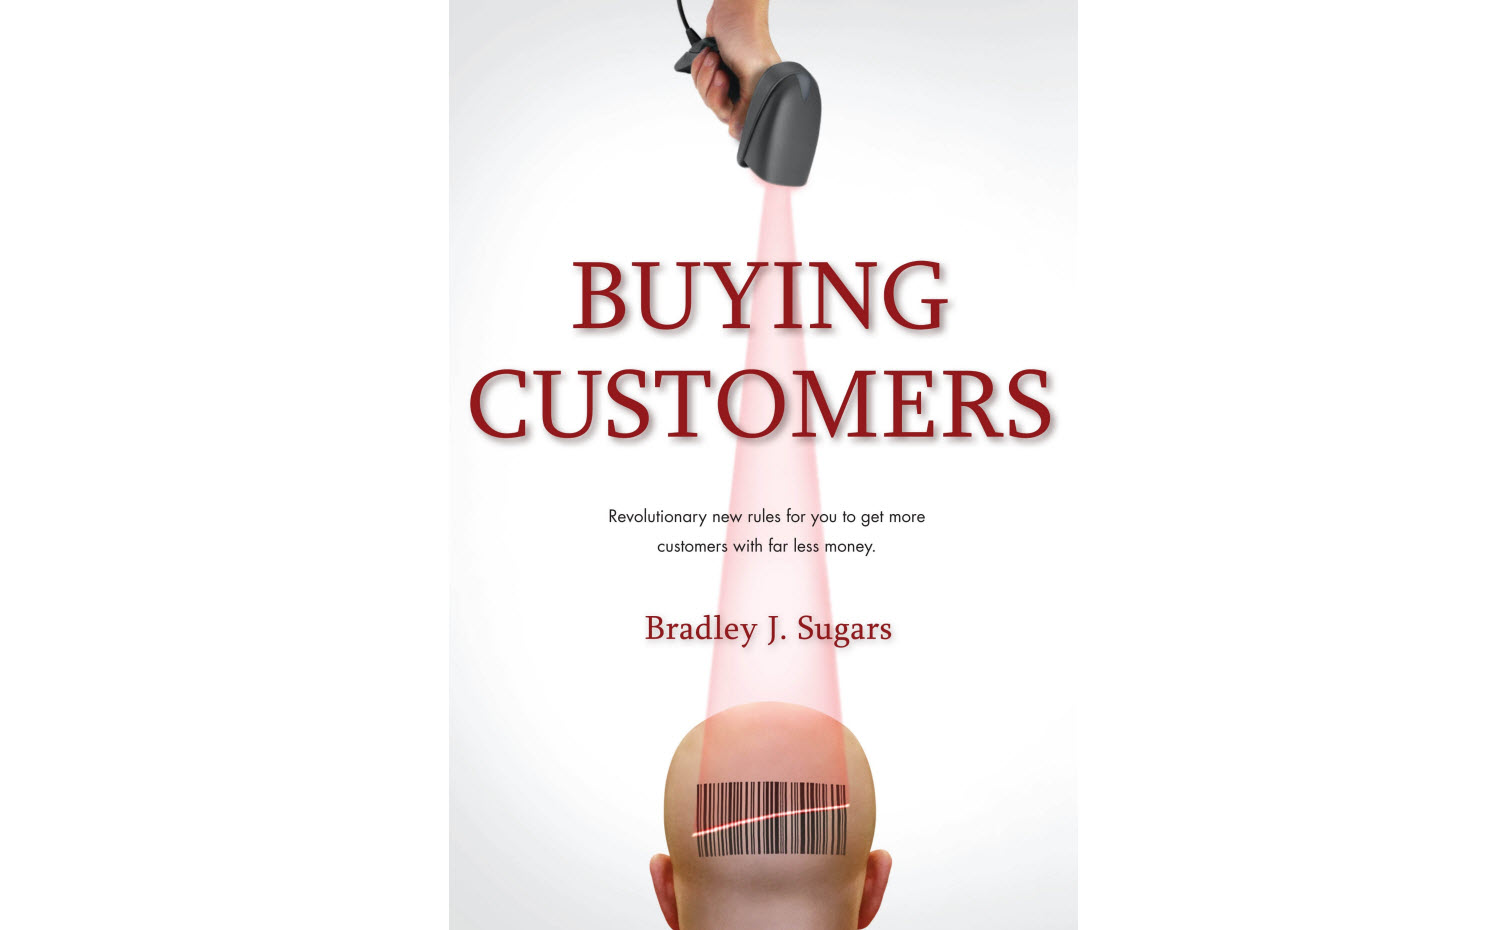 Brad Sugars on Buying Customers - The Goal of Every Business